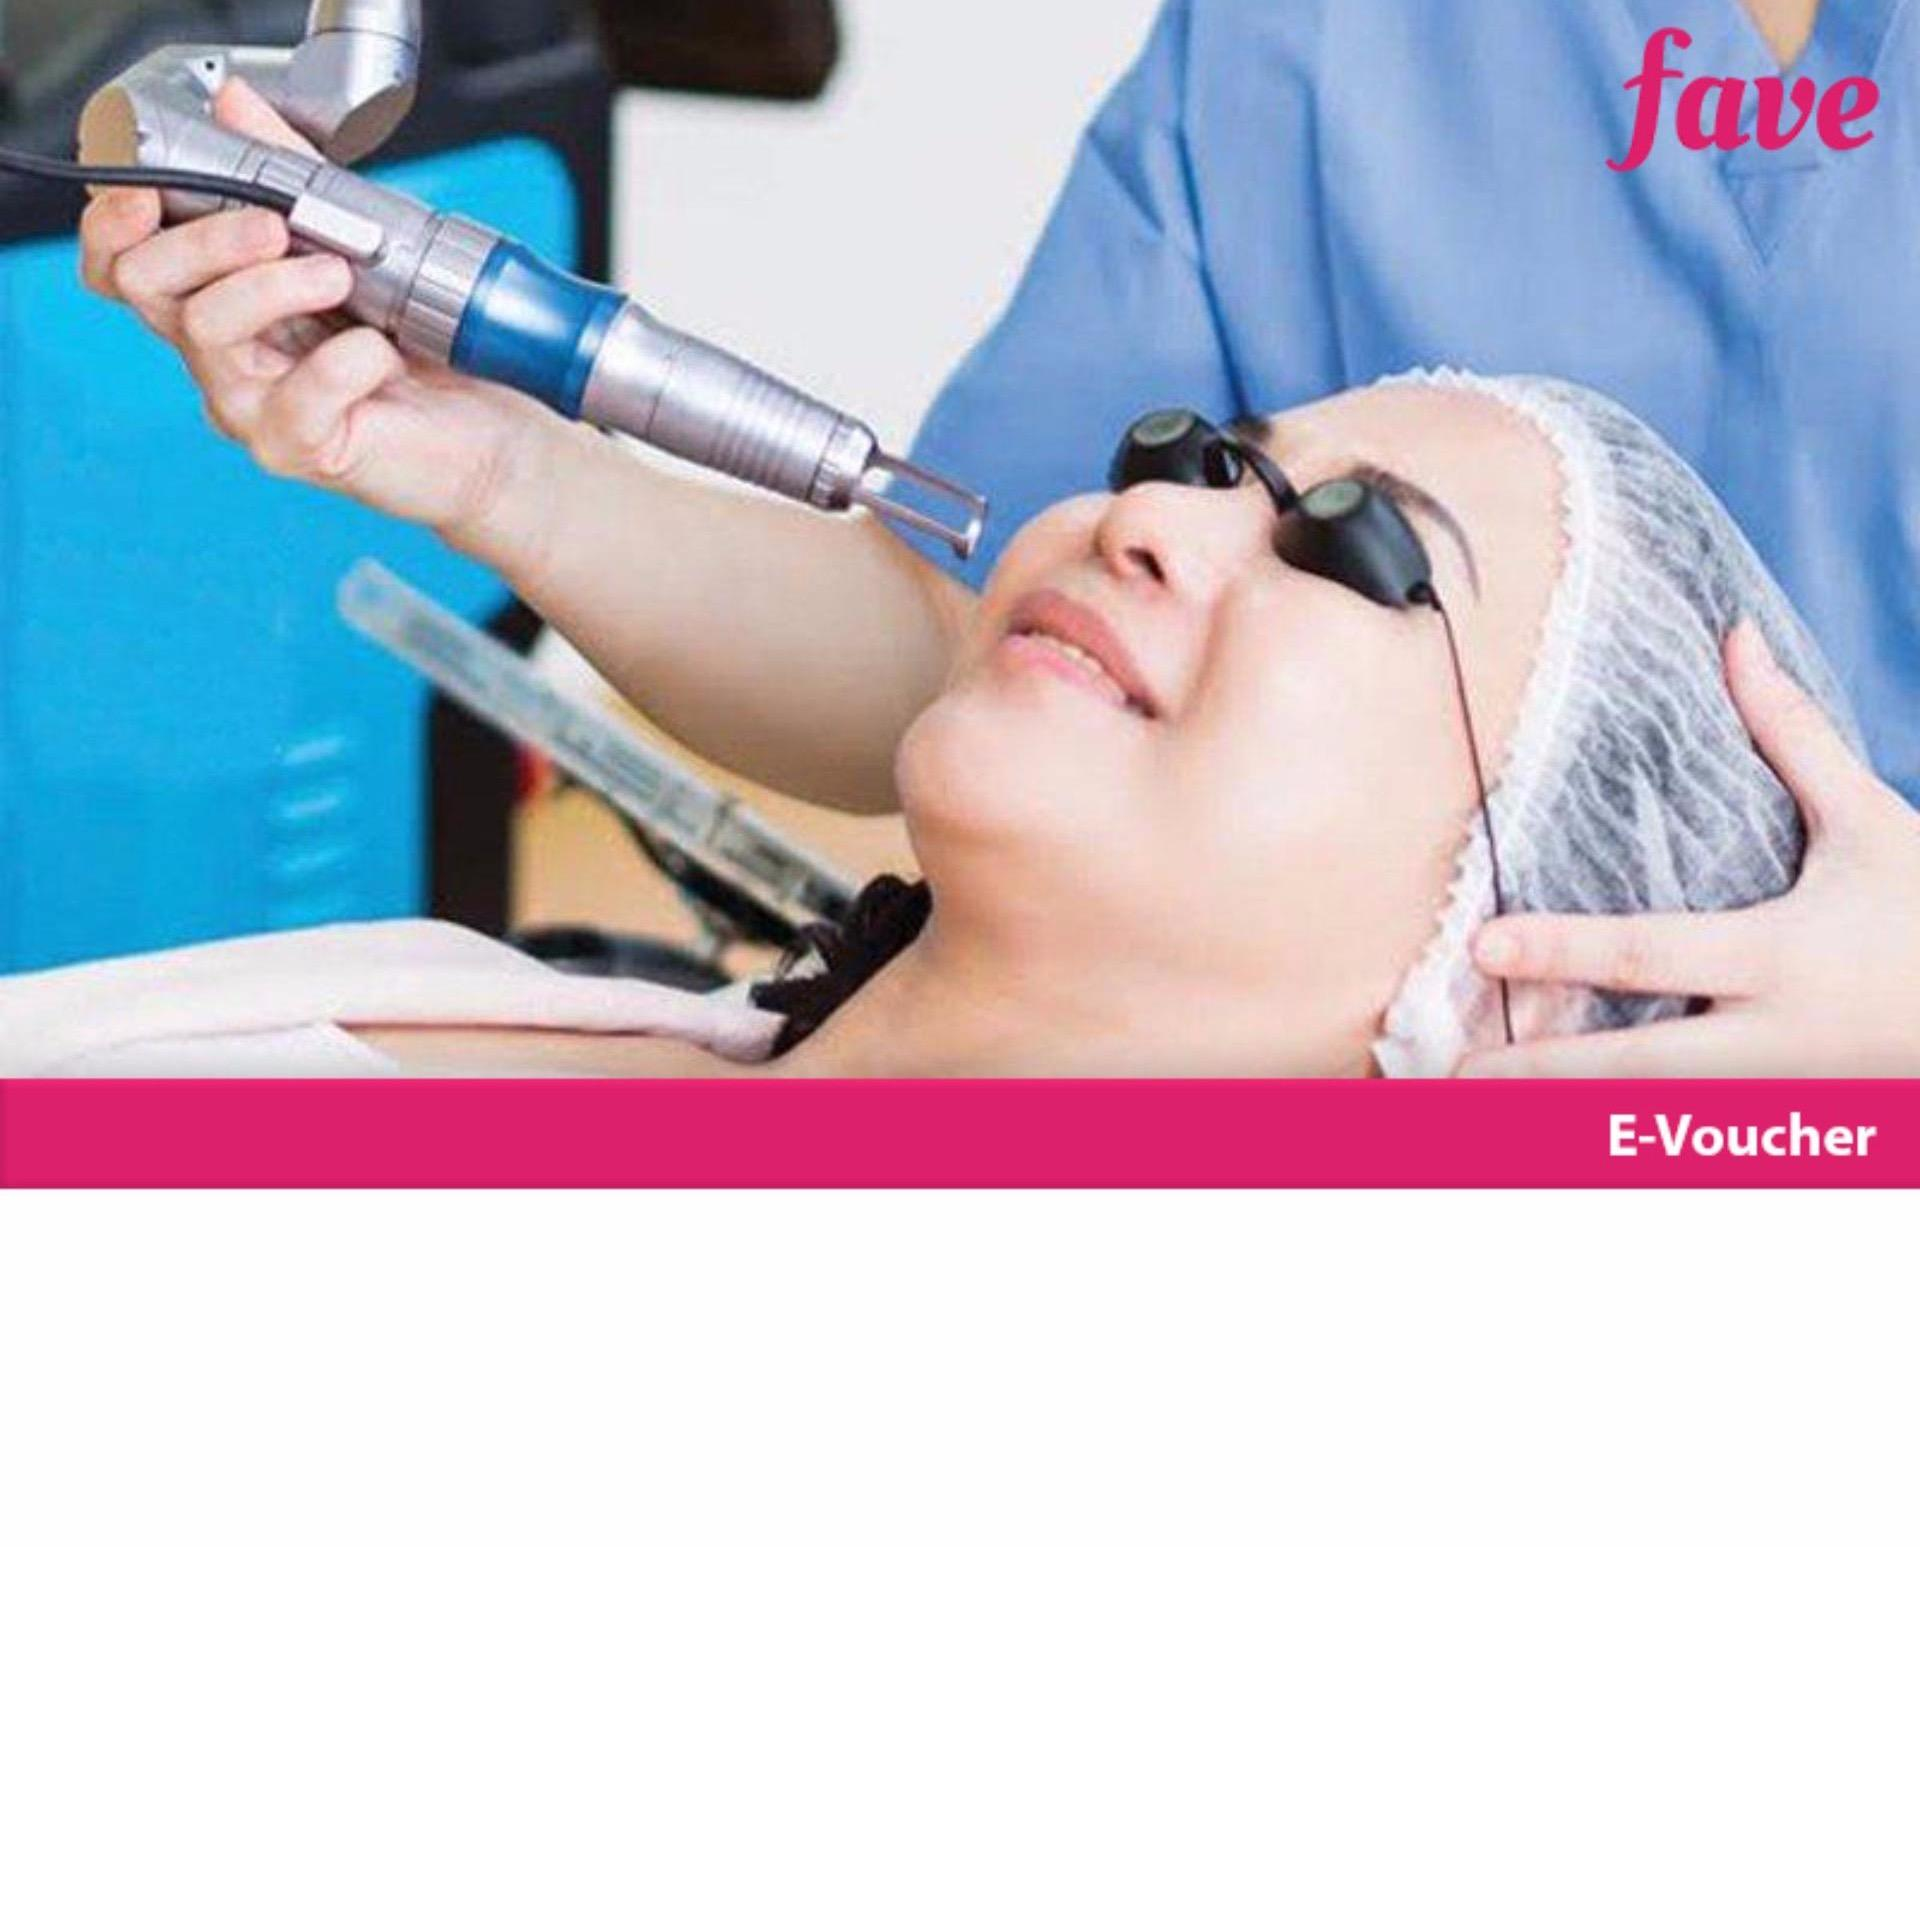 (grand Indonesia) Pure Laser Clinic From Singapore By Ppp 5x Pure Photo Laser Treatment By Fave Indonesia.